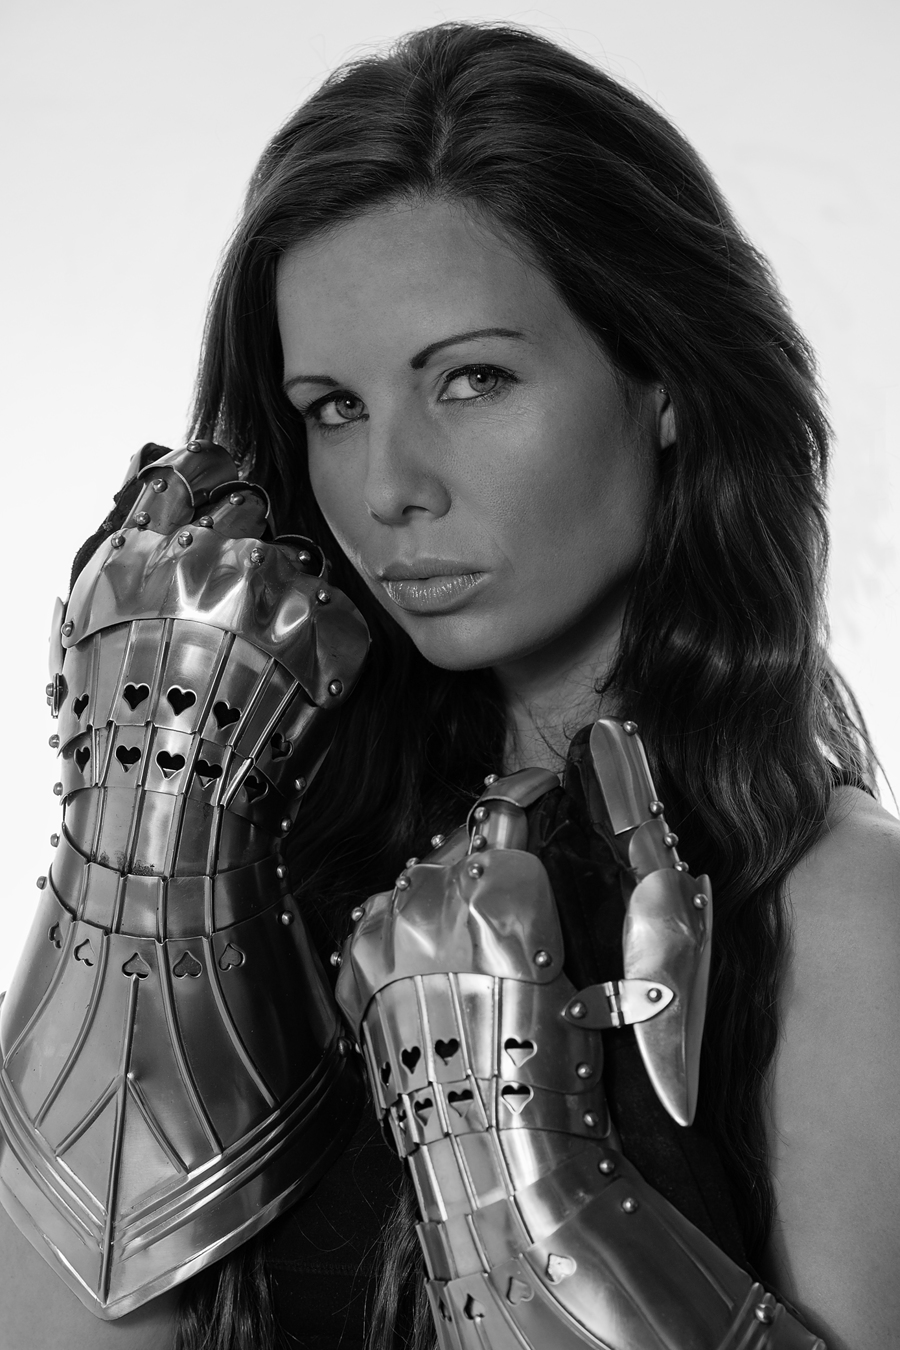 Fiona York Knight's Armour / Photography by Andy Oliver, Post processing by Andy Oliver / Uploaded 24th November 2017 @ 10:00 PM